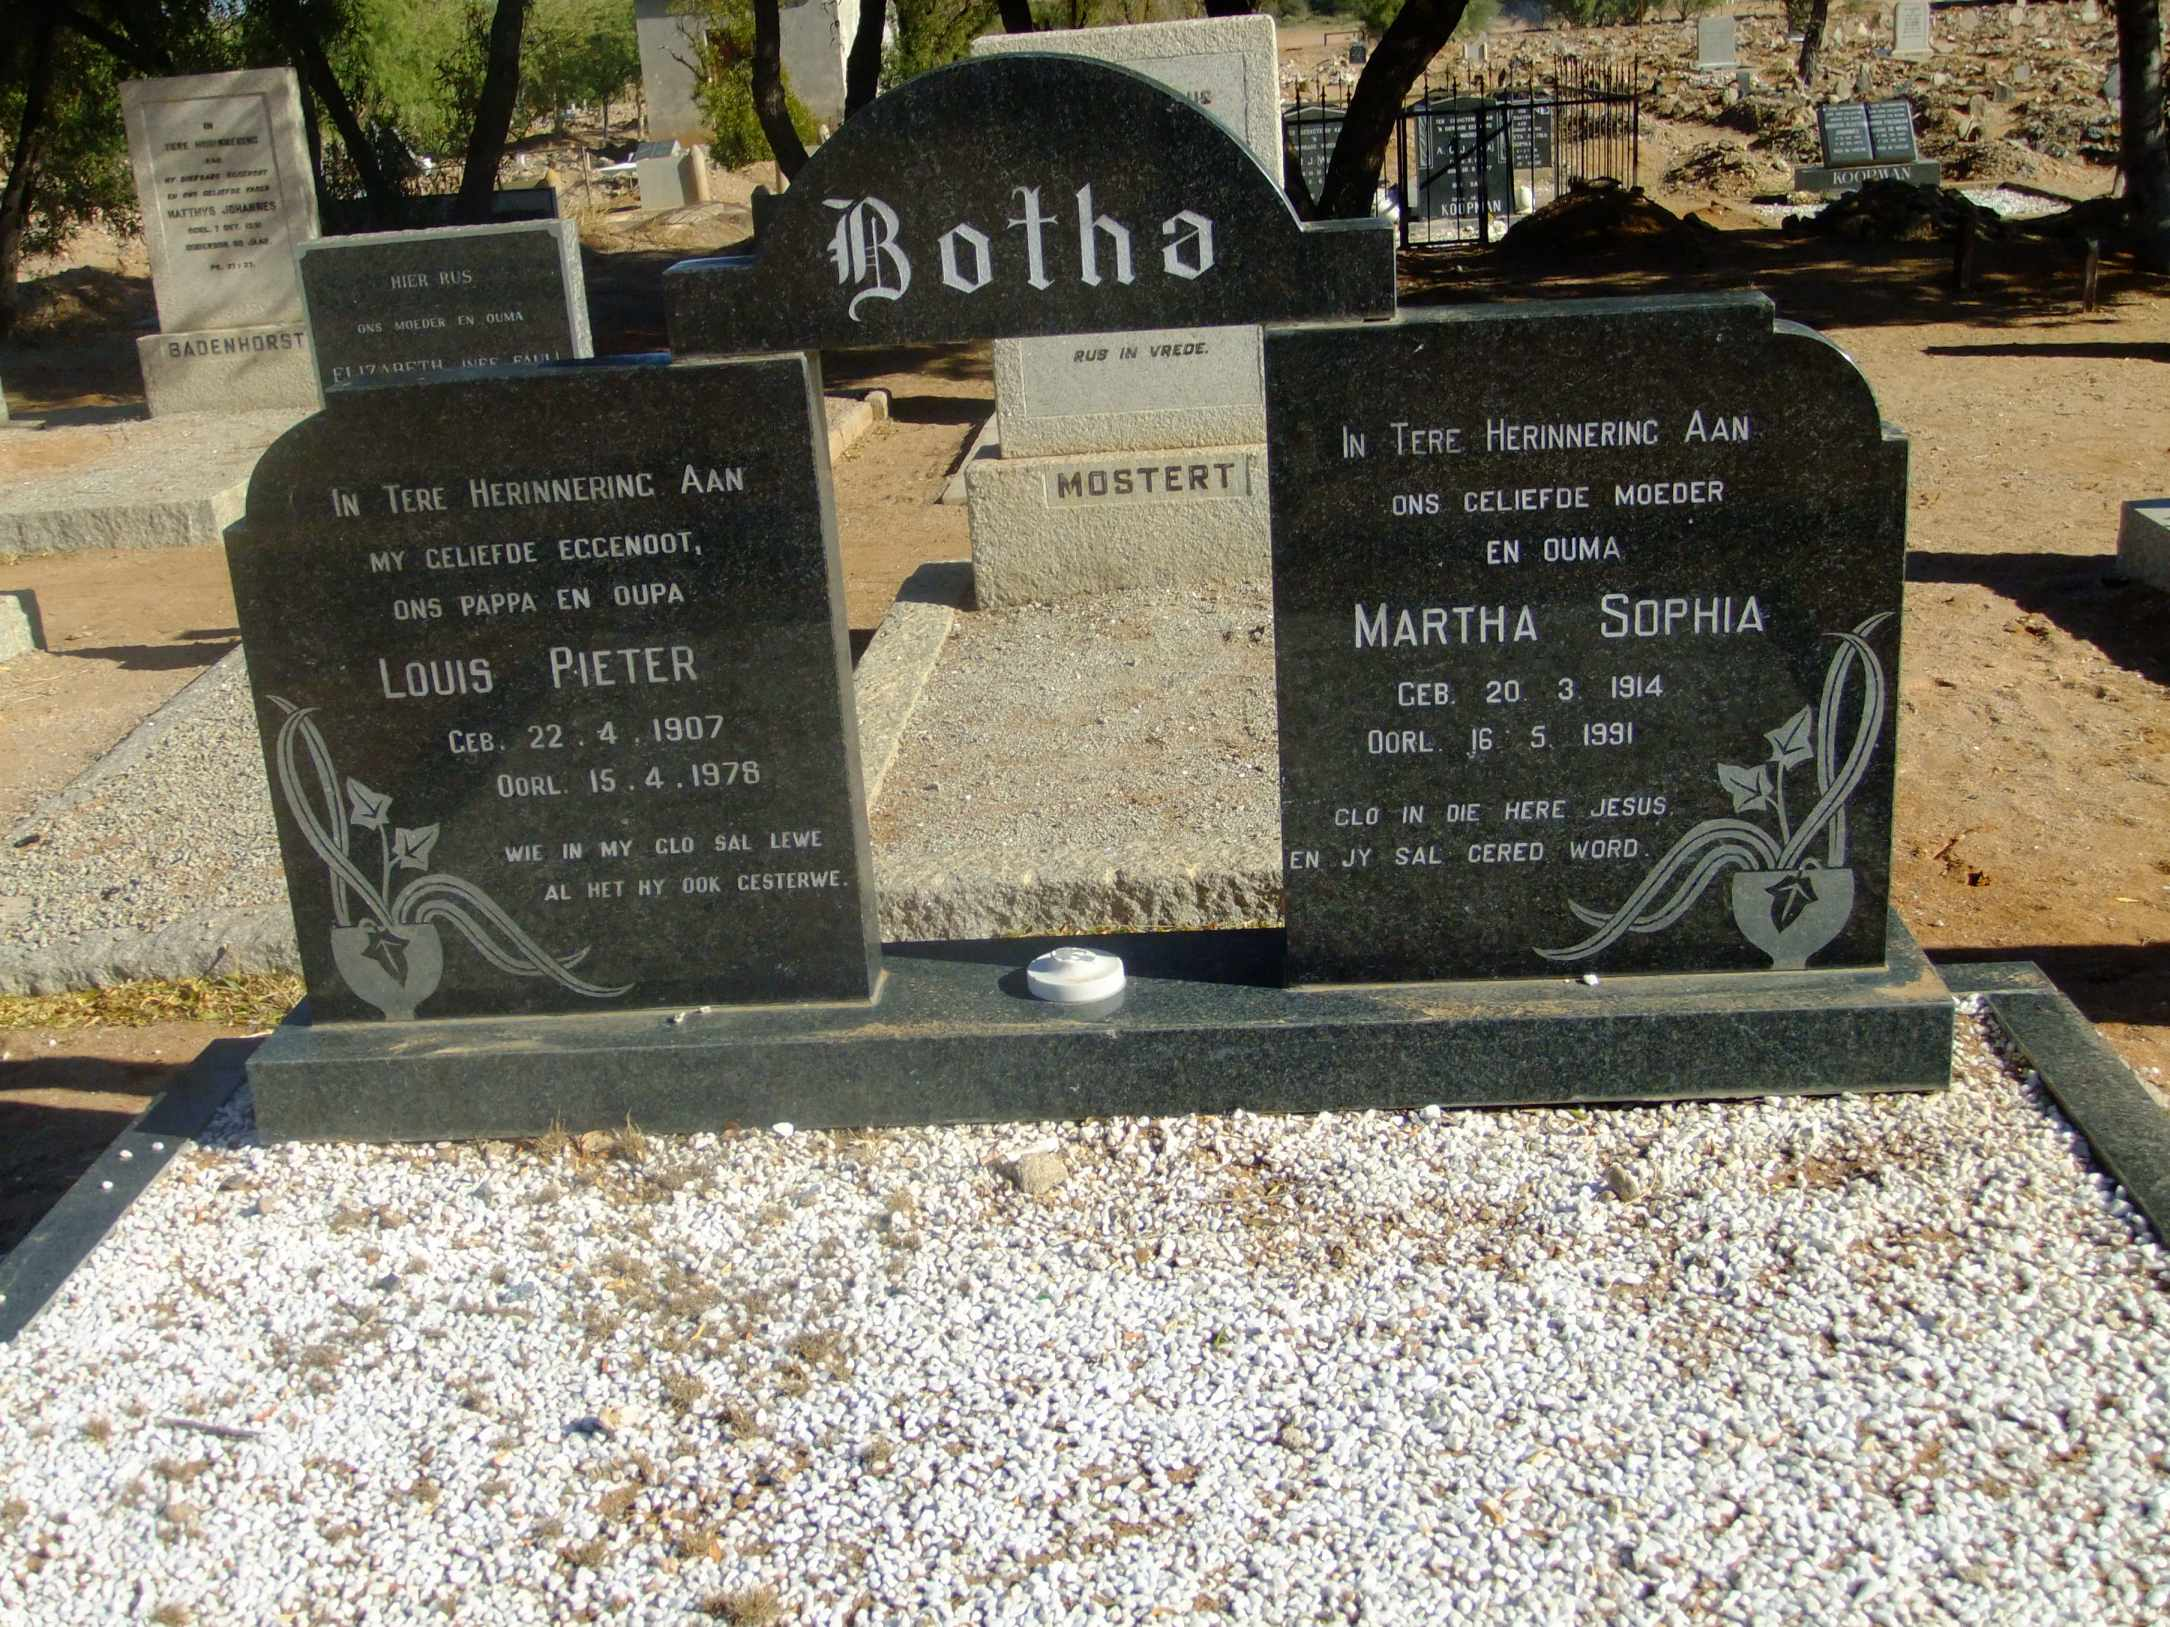 Botha, Louis Peter and Martha Sophia